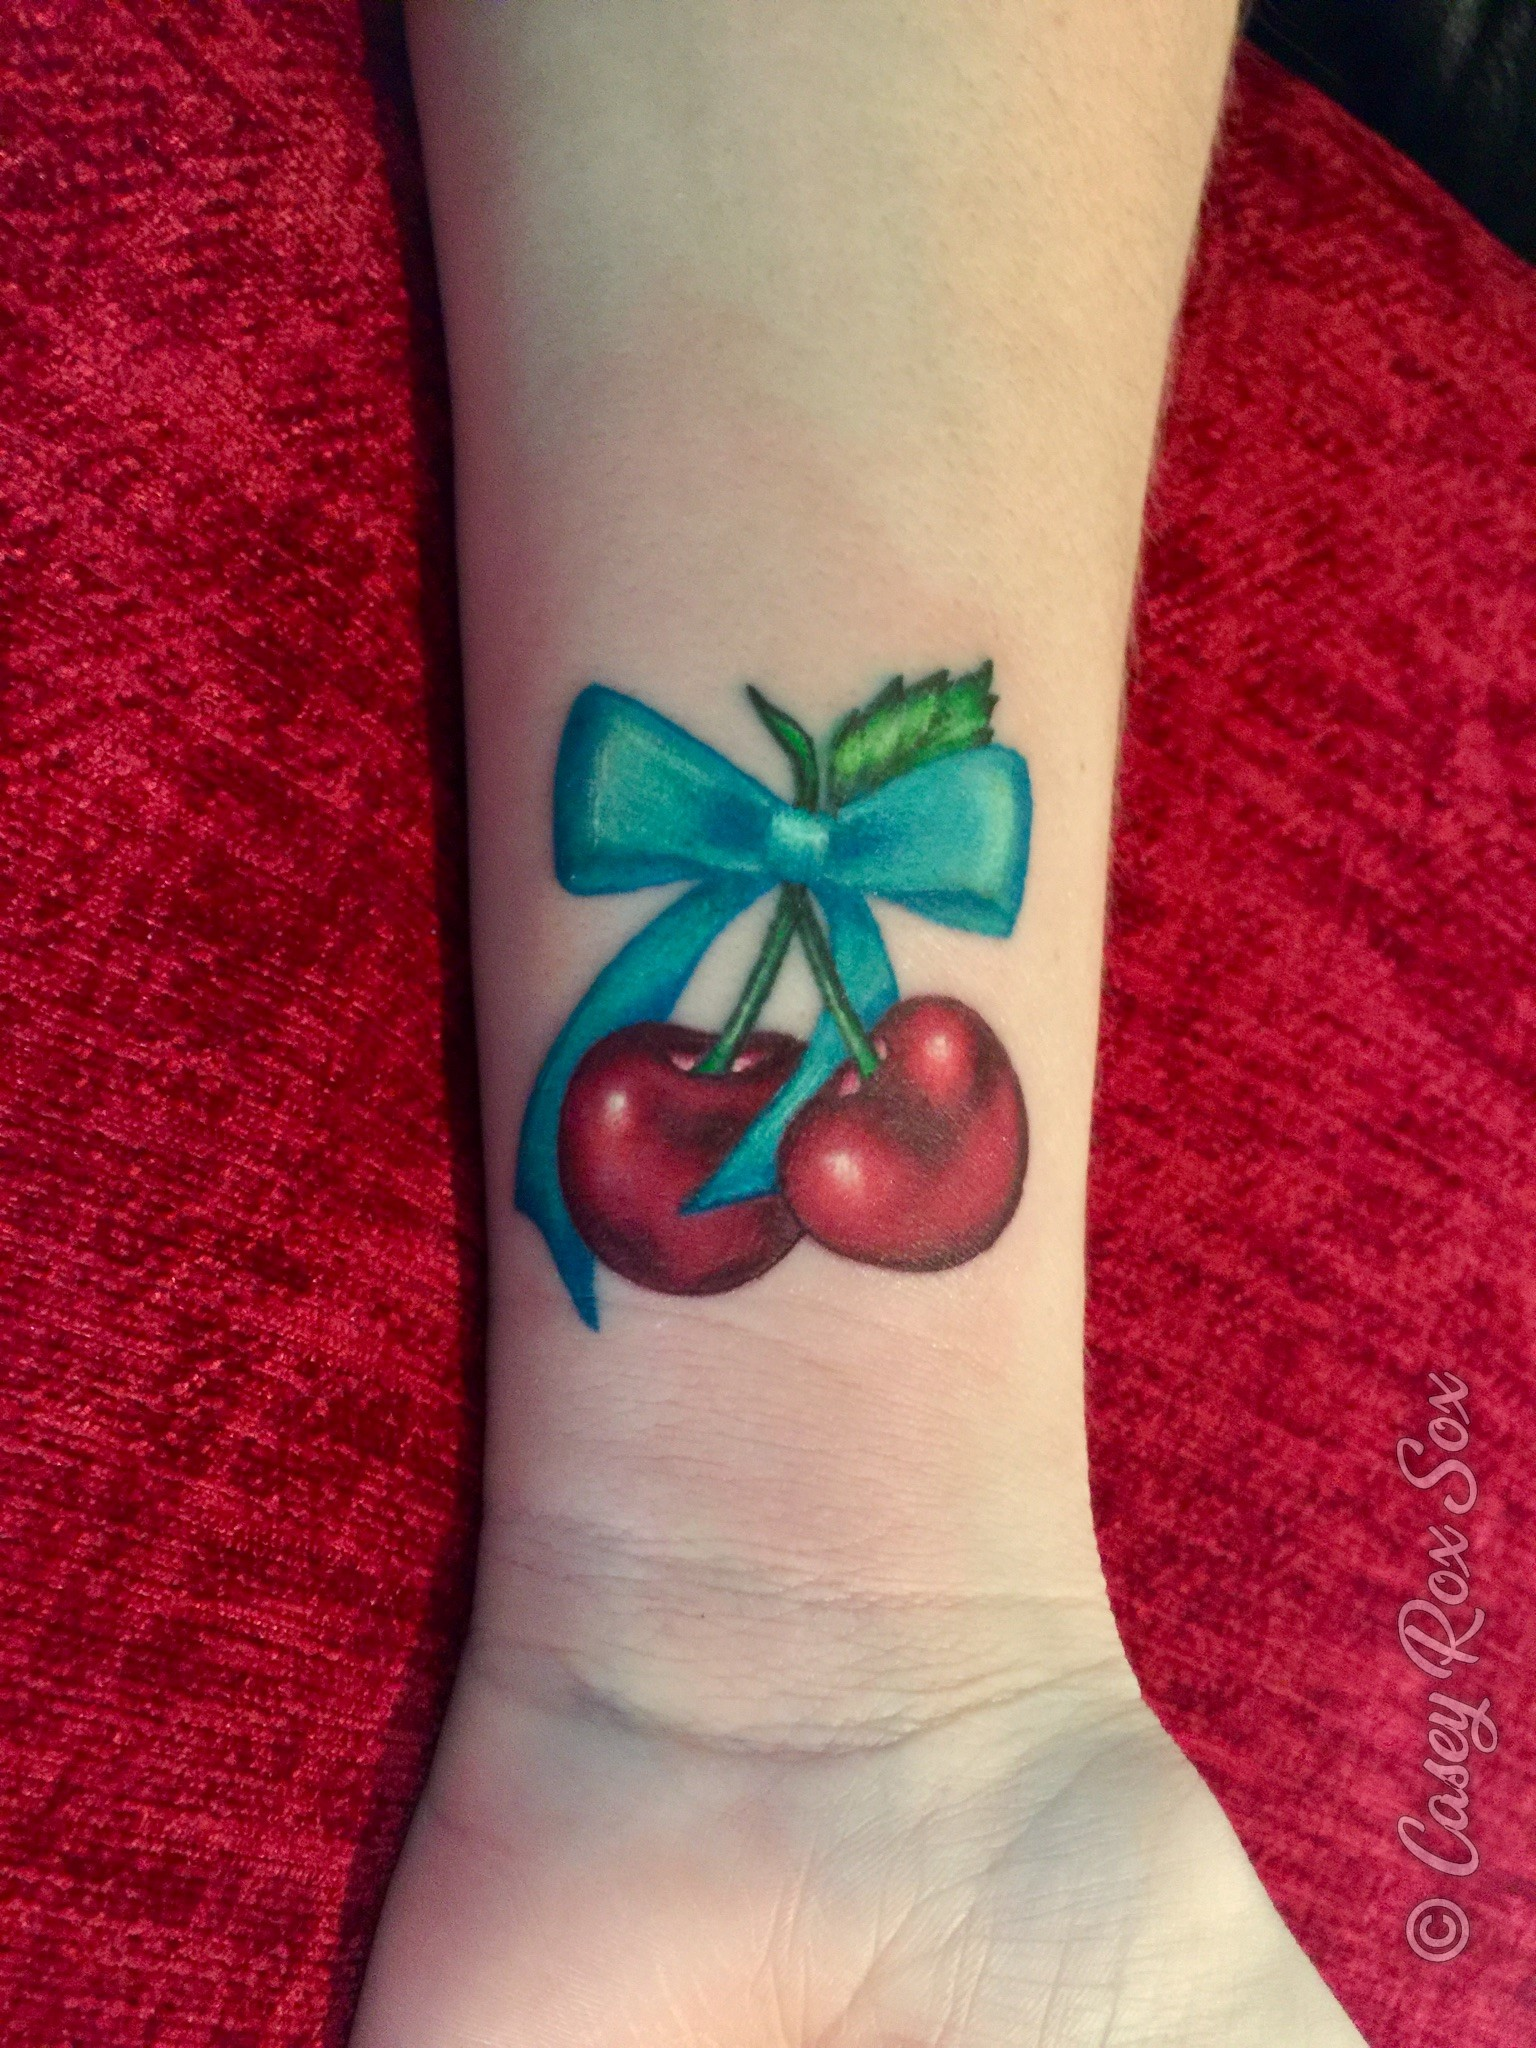 Cherries with bow